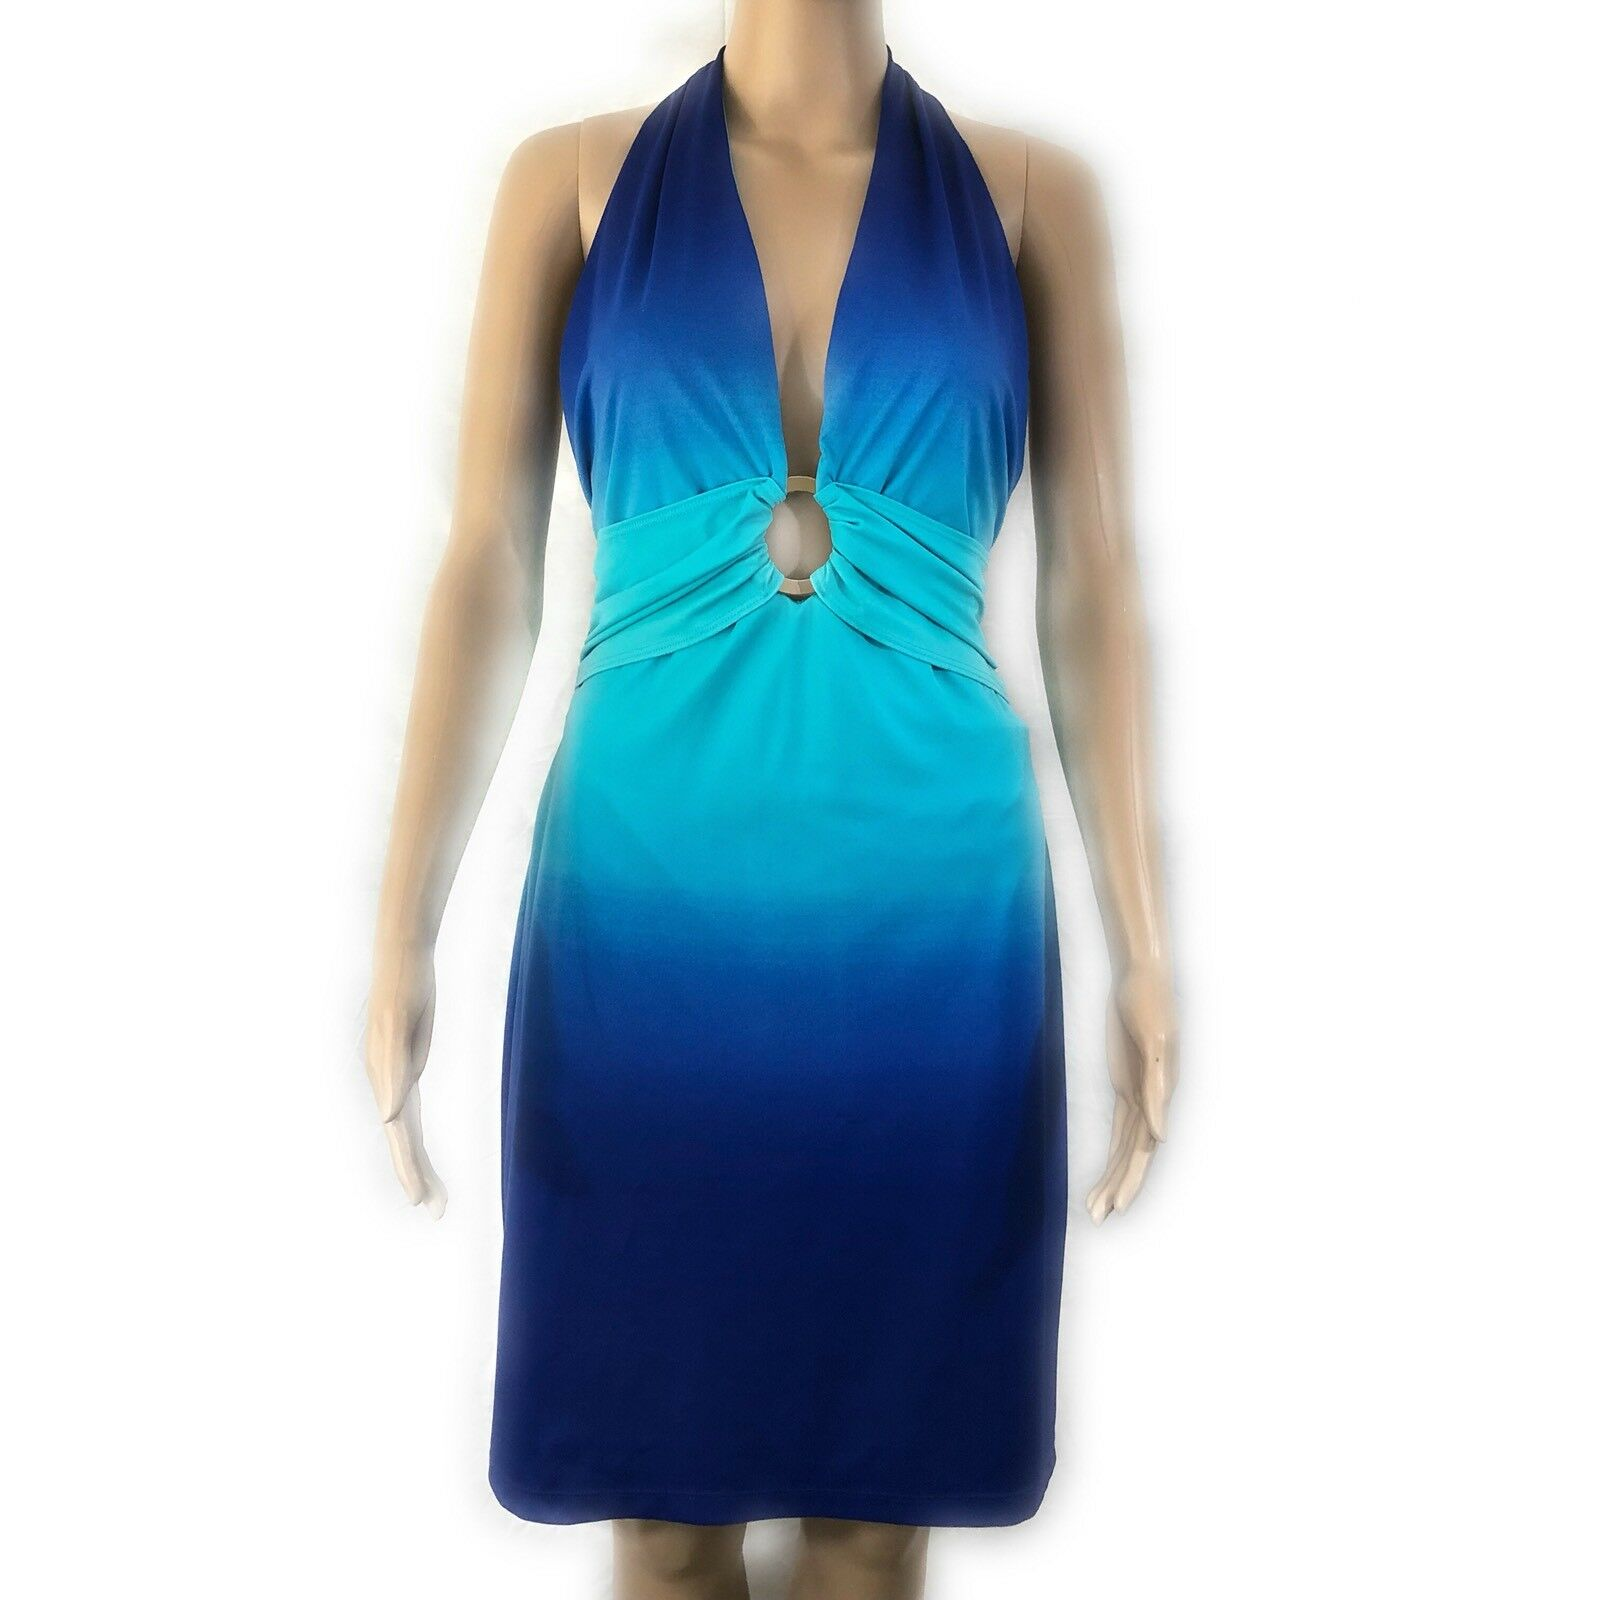 Cache damen Dress Größe 12 Blau Ombre Sleeveless Halter Sundress Wedding Special